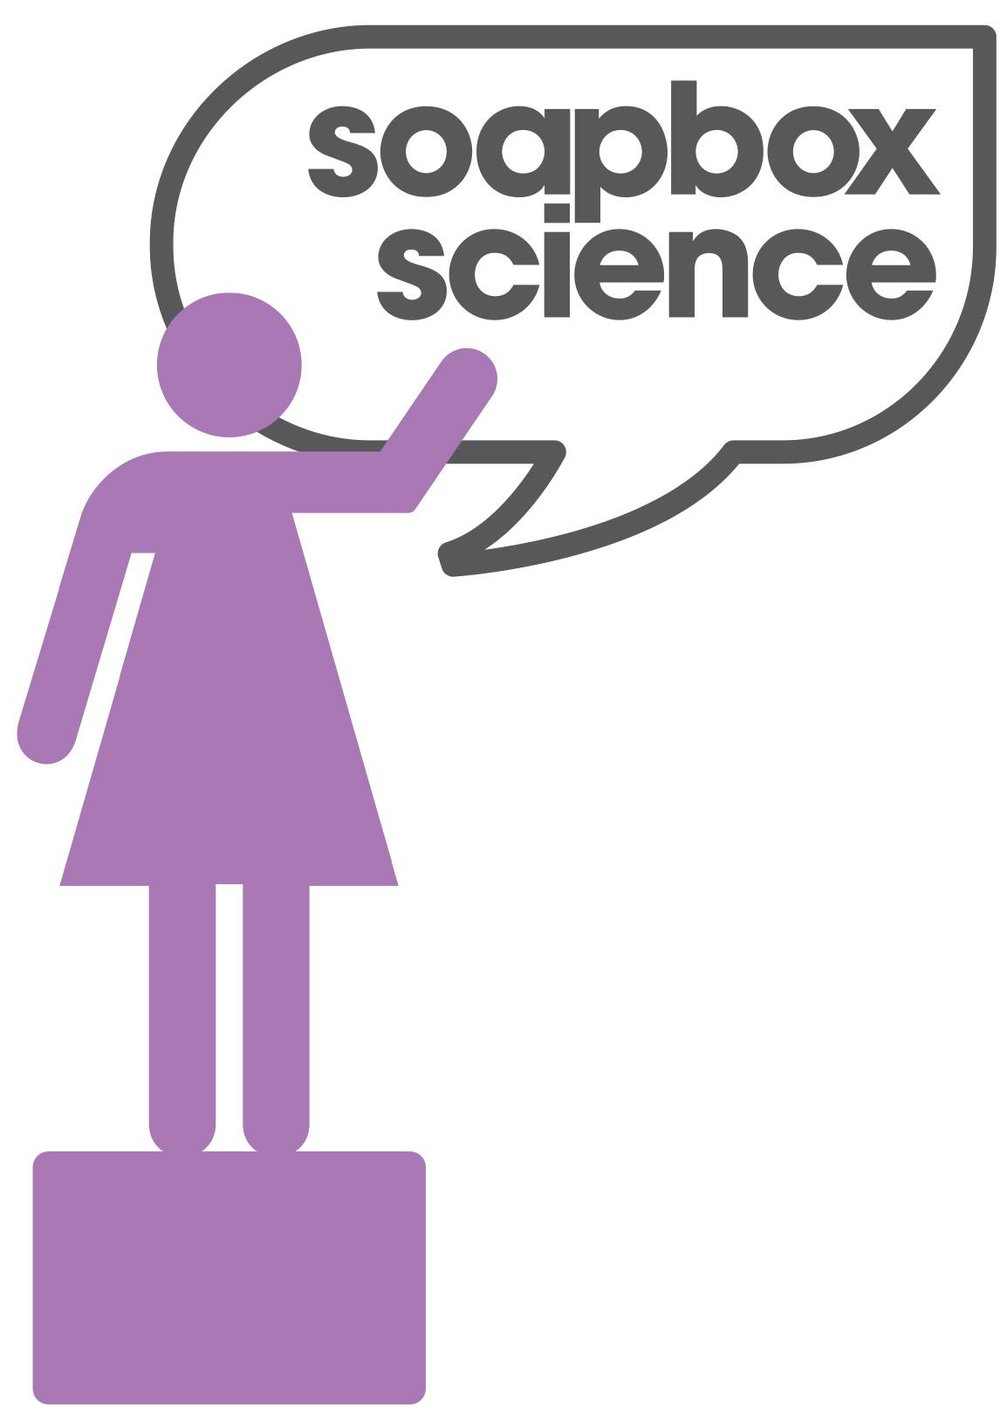 Soapbox Science Speaker - Parshati will be one of the twelve speakers at the Science Literacy Week - Soapbox Science Event in Toronto scheduled for September 23, 2018.